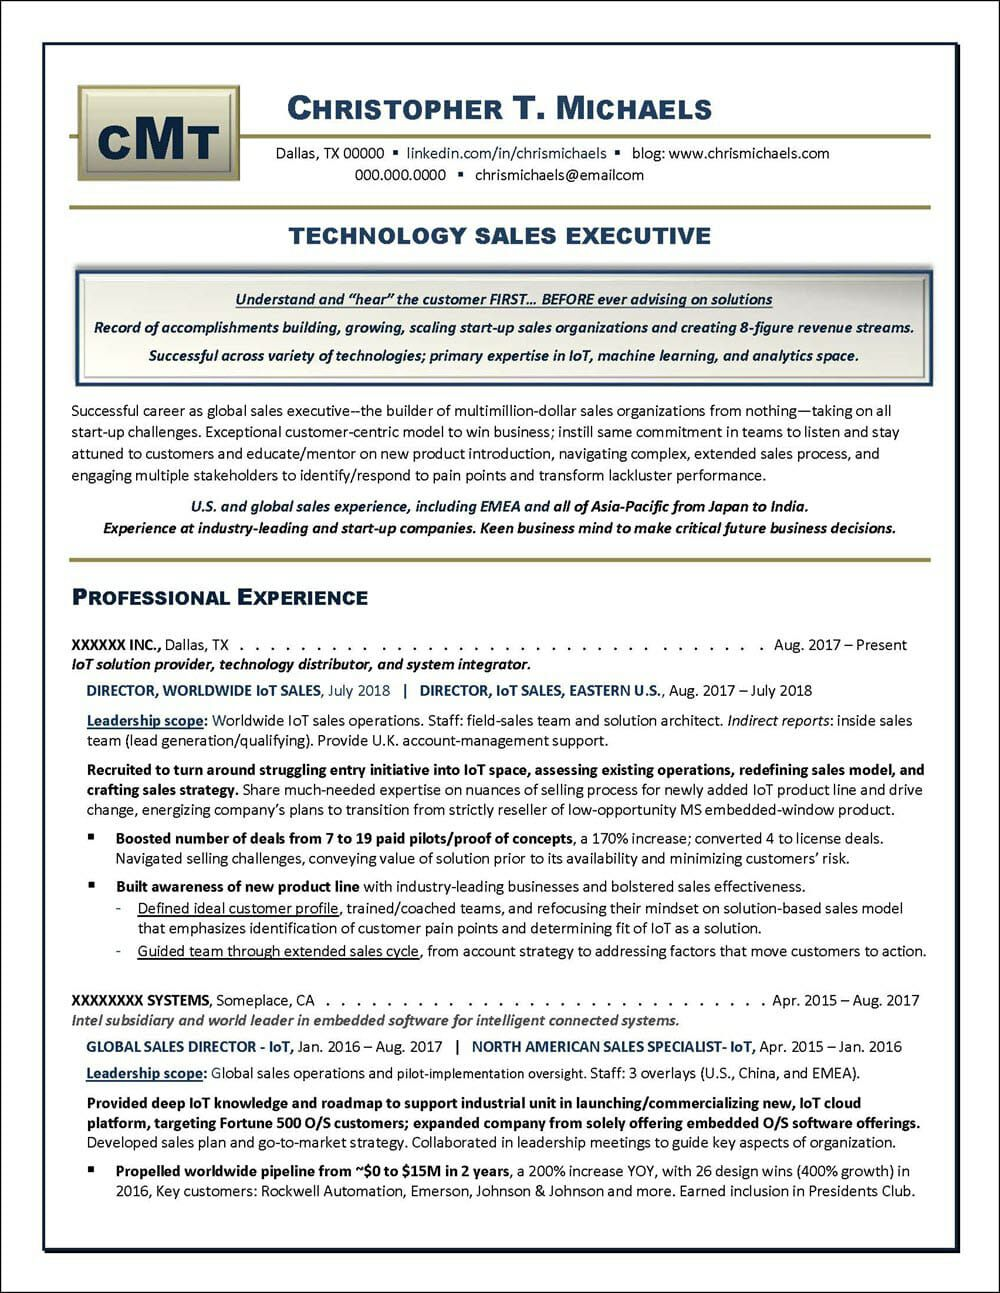 Technology Sales Executive Resume Distinctive Career Services Executive Resume Job Resume Examples Resume Examples